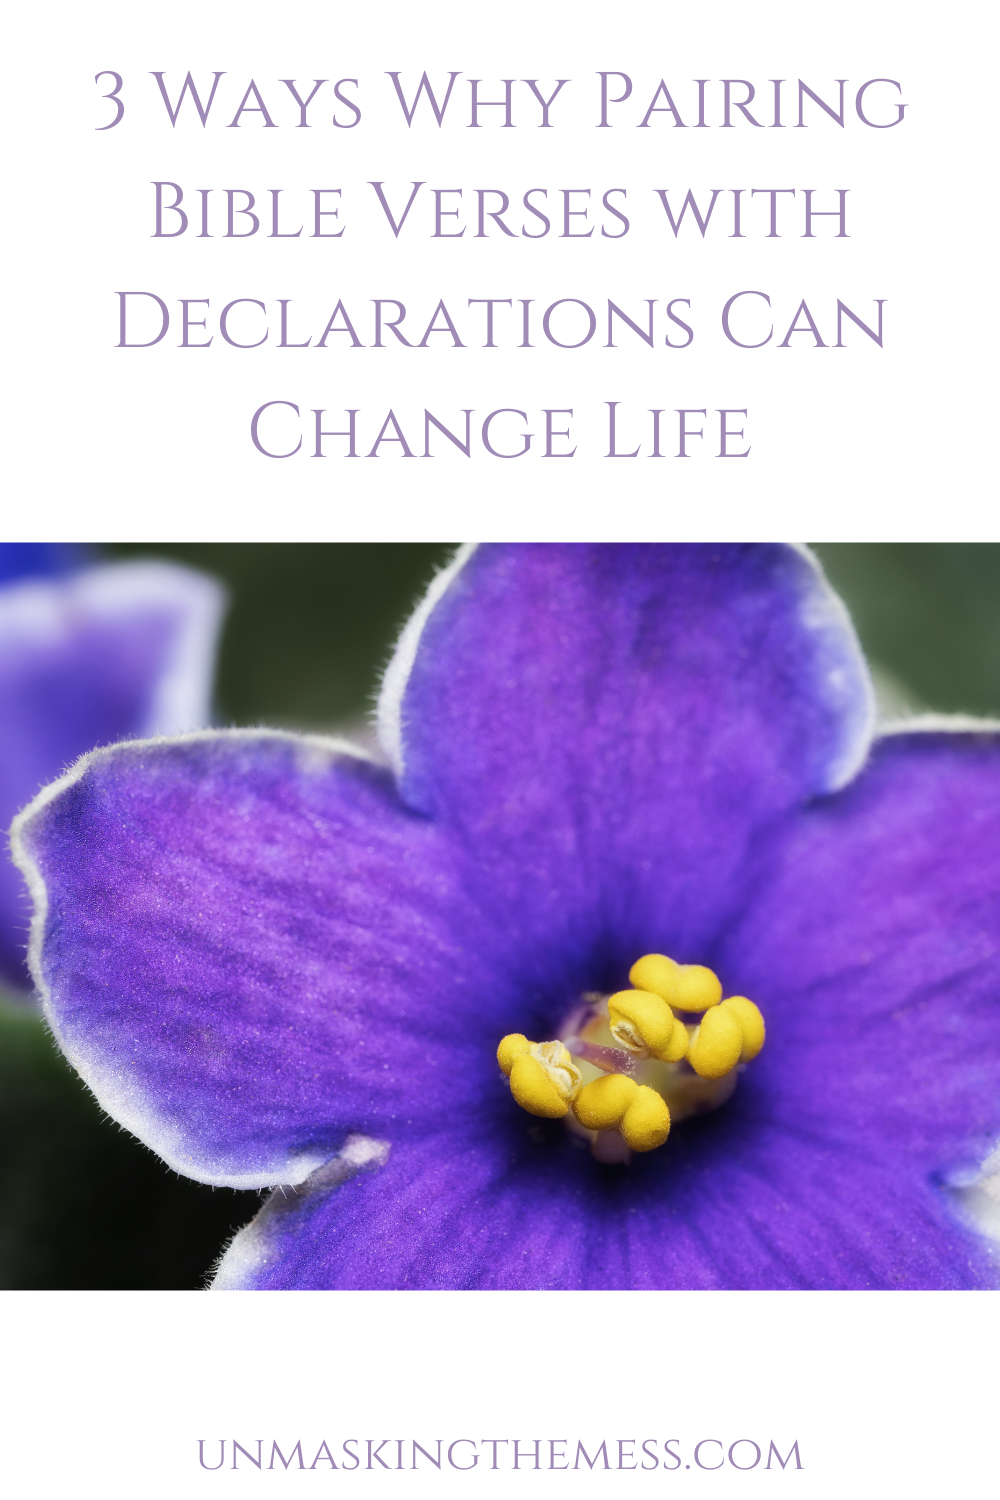 3 Ways Why Pairing Bible Verses with Affirmation Can Change Your Life. Want to change our thinking? Learn how to change your thinking and use Bible verses with declarations to change your life using these tips! #mindset #tips